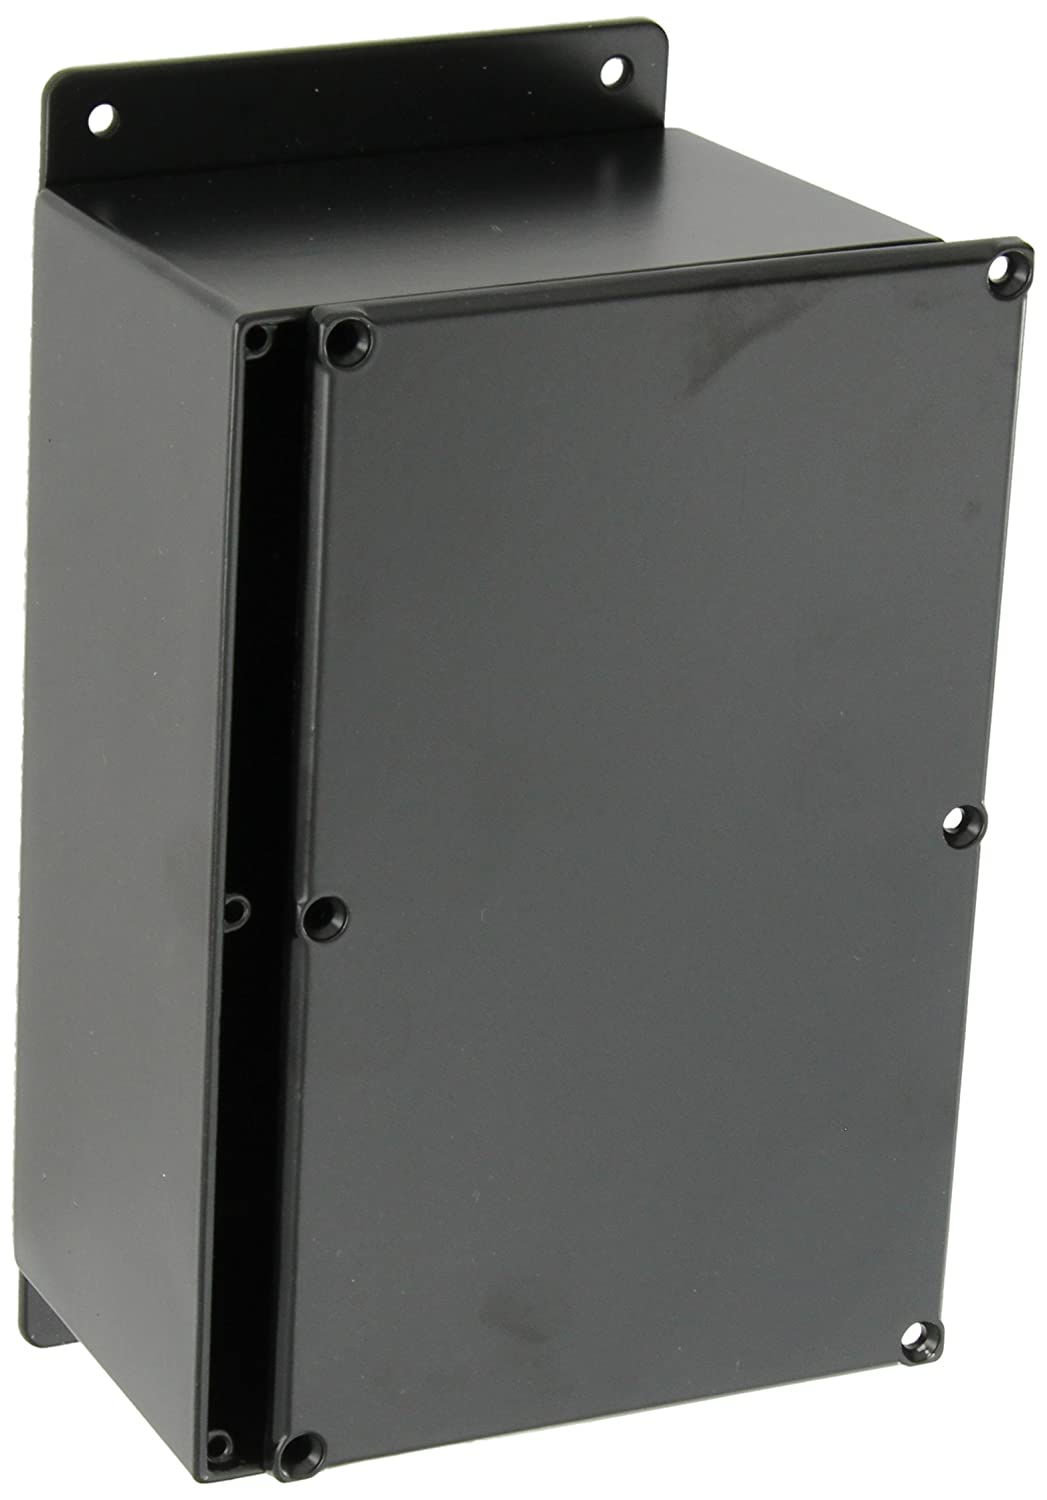 7-3//8 Length x 4-11//16 Width x 3-13//64 Height Black Powdercoat Finish 7-3//8 Length x 4-11//16 Width x 3-13//64 Height BUD Industries CU-4347-B Die Cast Aluminum Econobox with Mounting Bracket